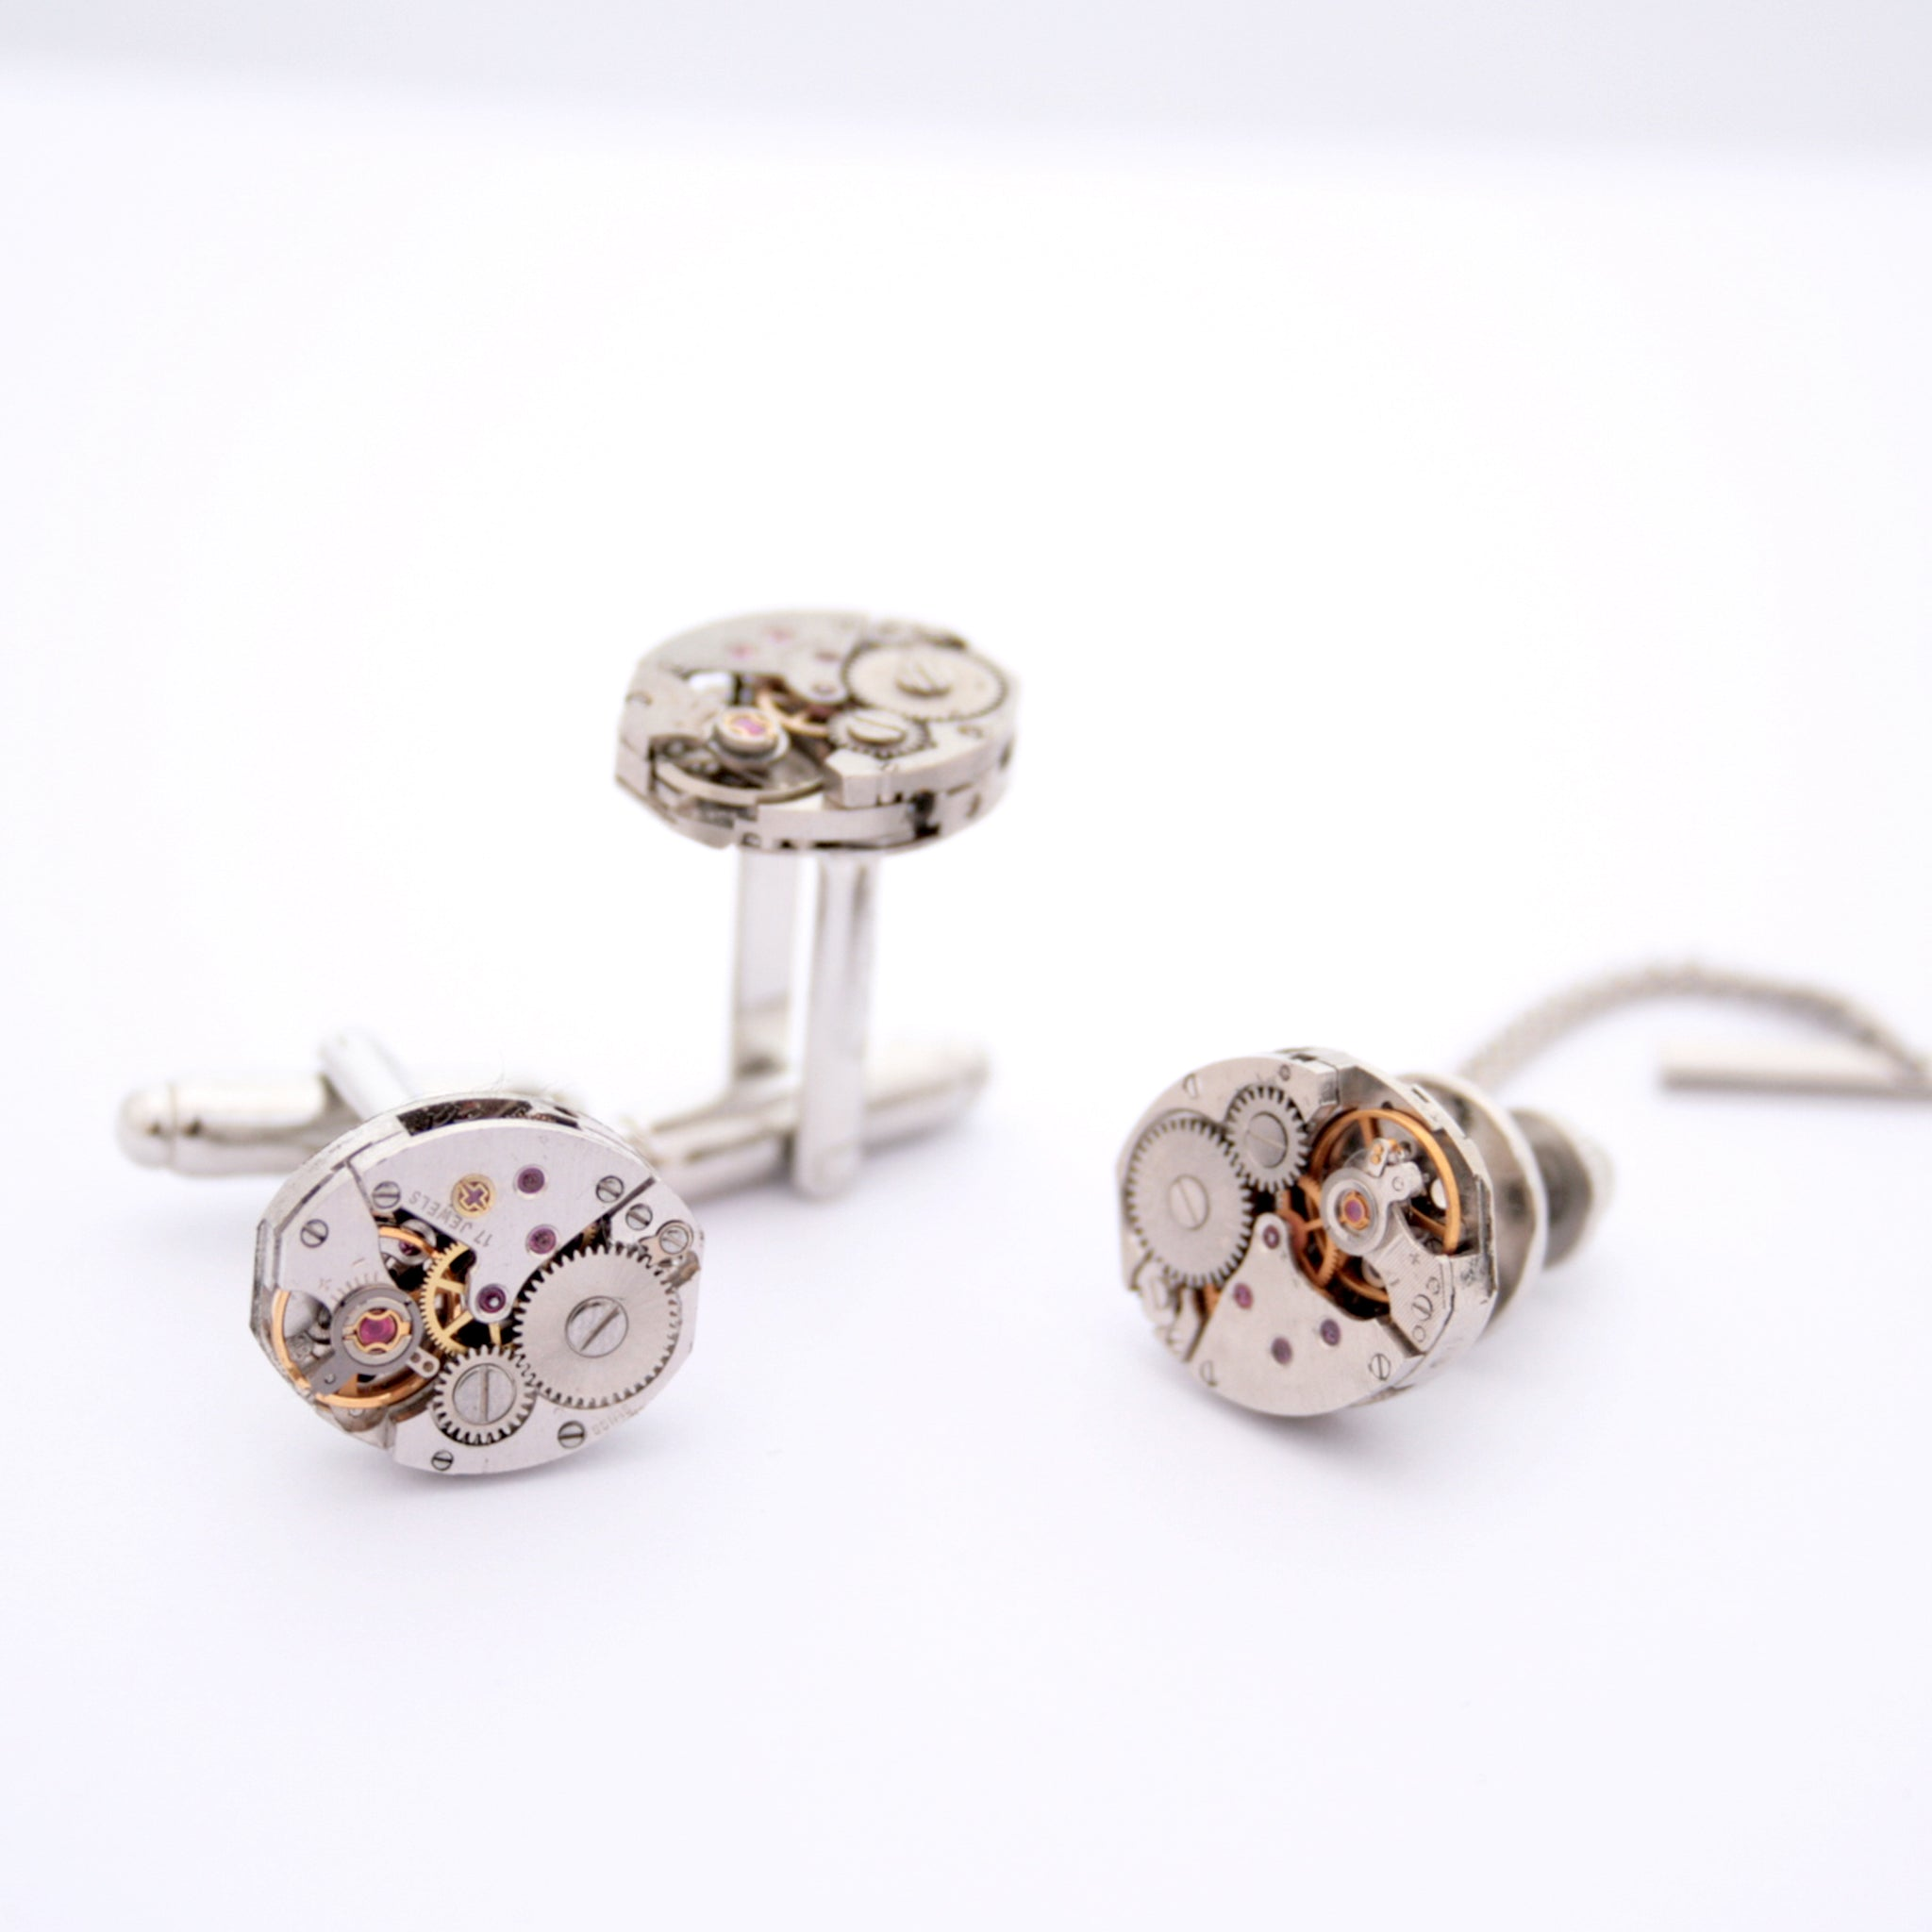 Tie Tack and Cufflinks featuring old clock parts